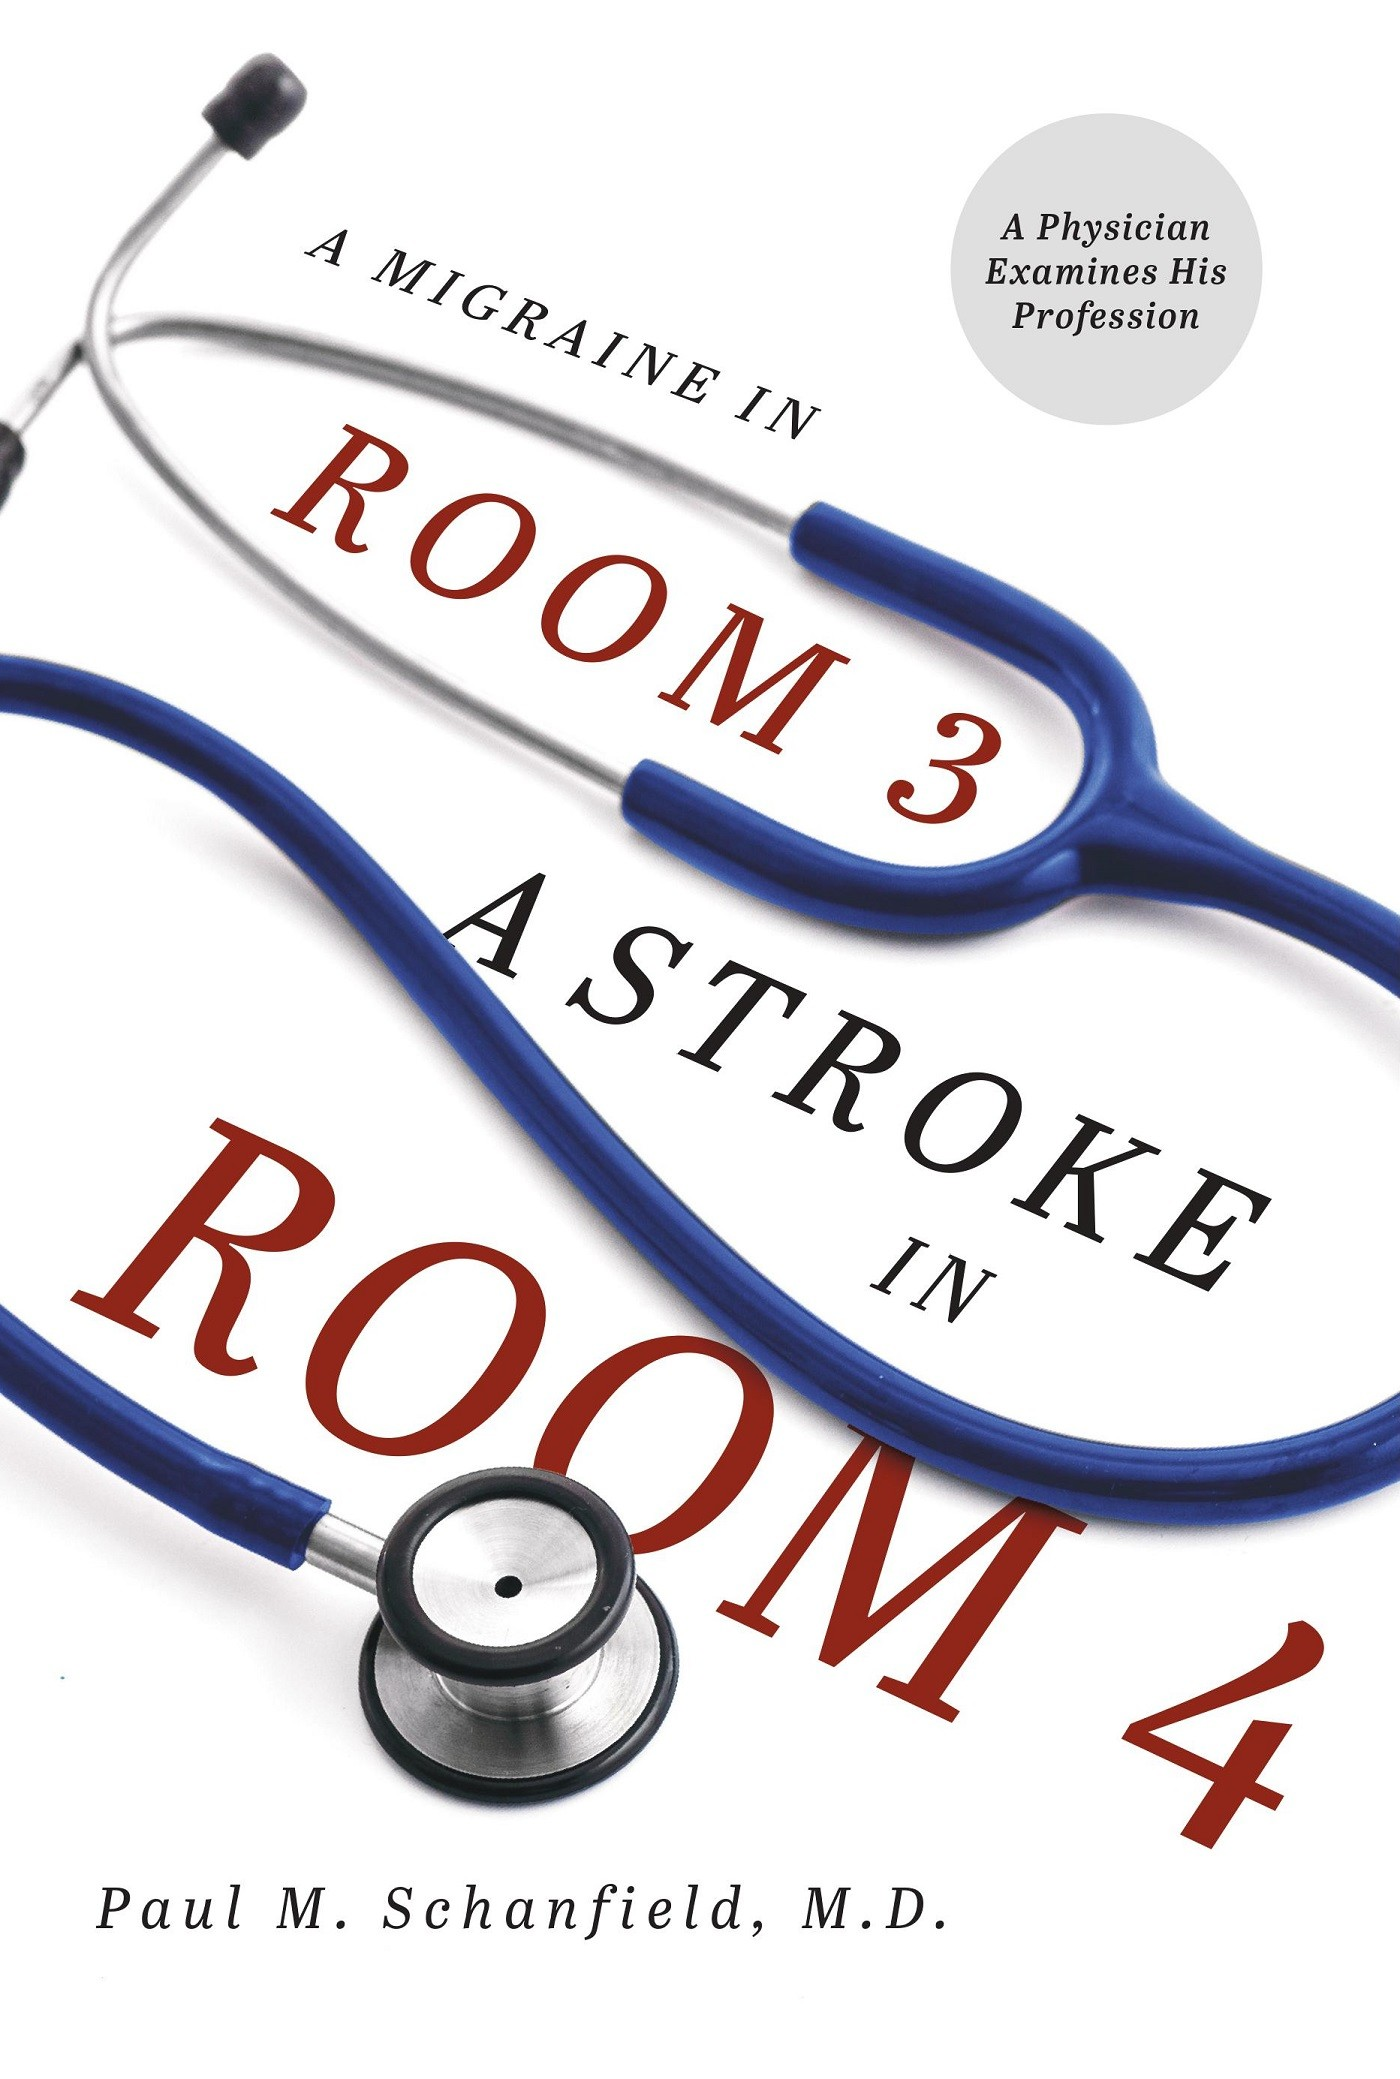 A Migraine in Room 3, A Stroke in Room 4